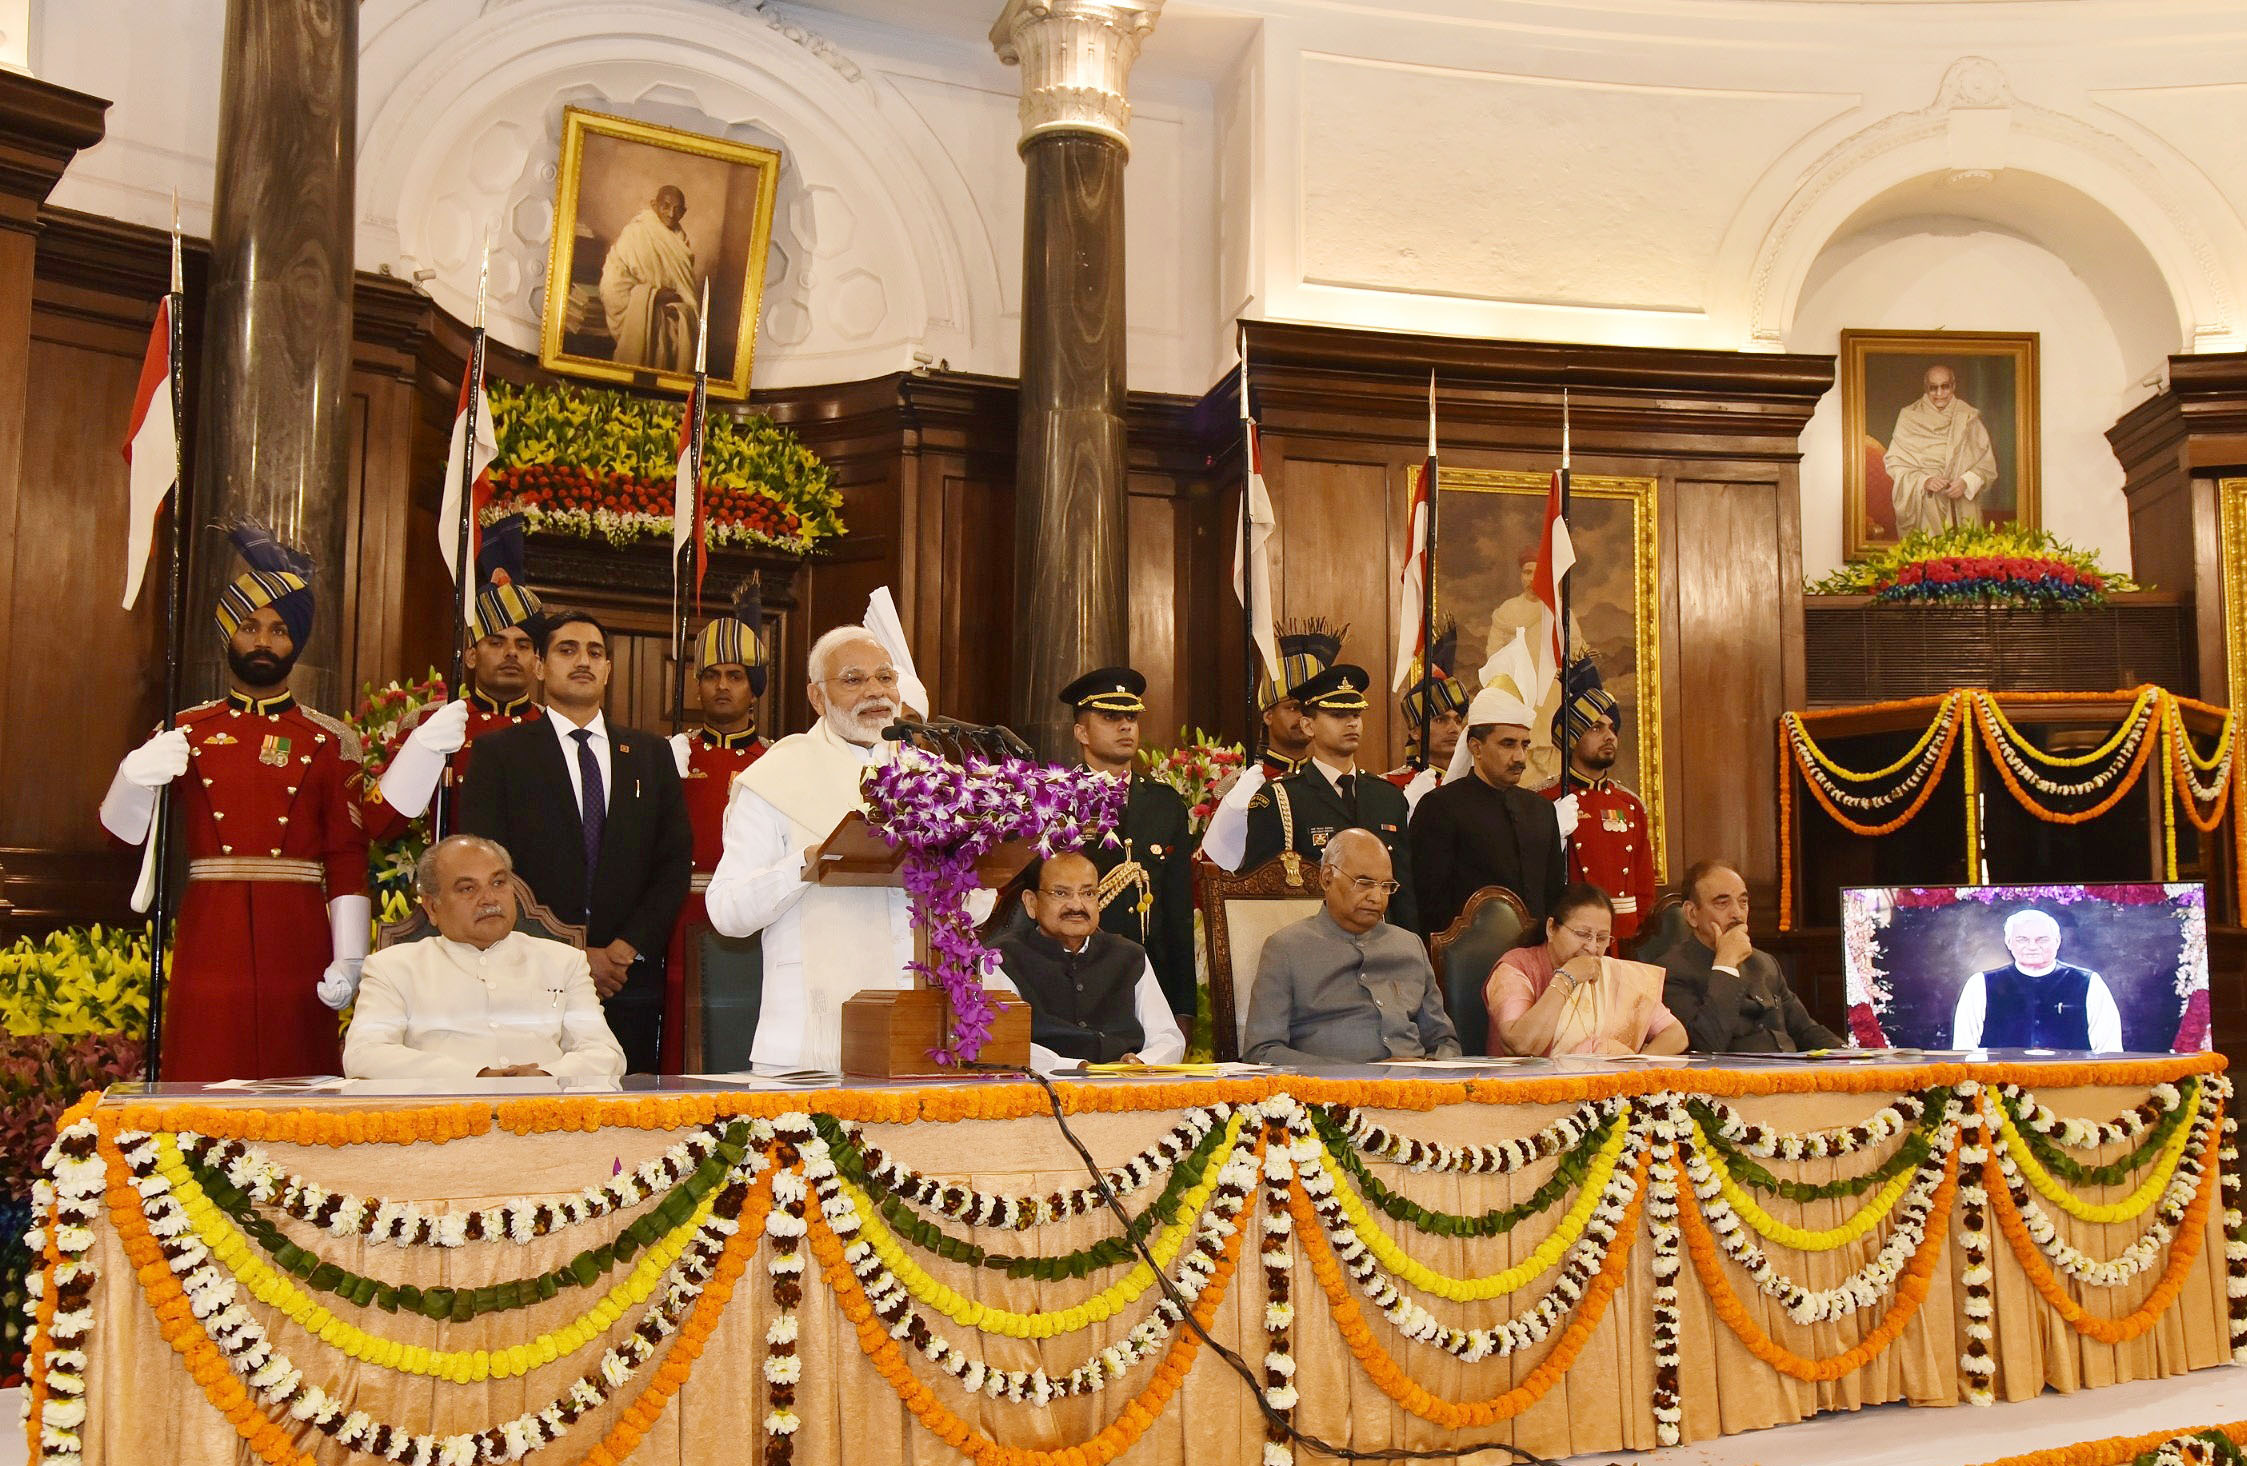 PM pays glowing tributes to former PM, Shri Atal Bihari Vajpayee jee on unveiling of his portrait in parliament